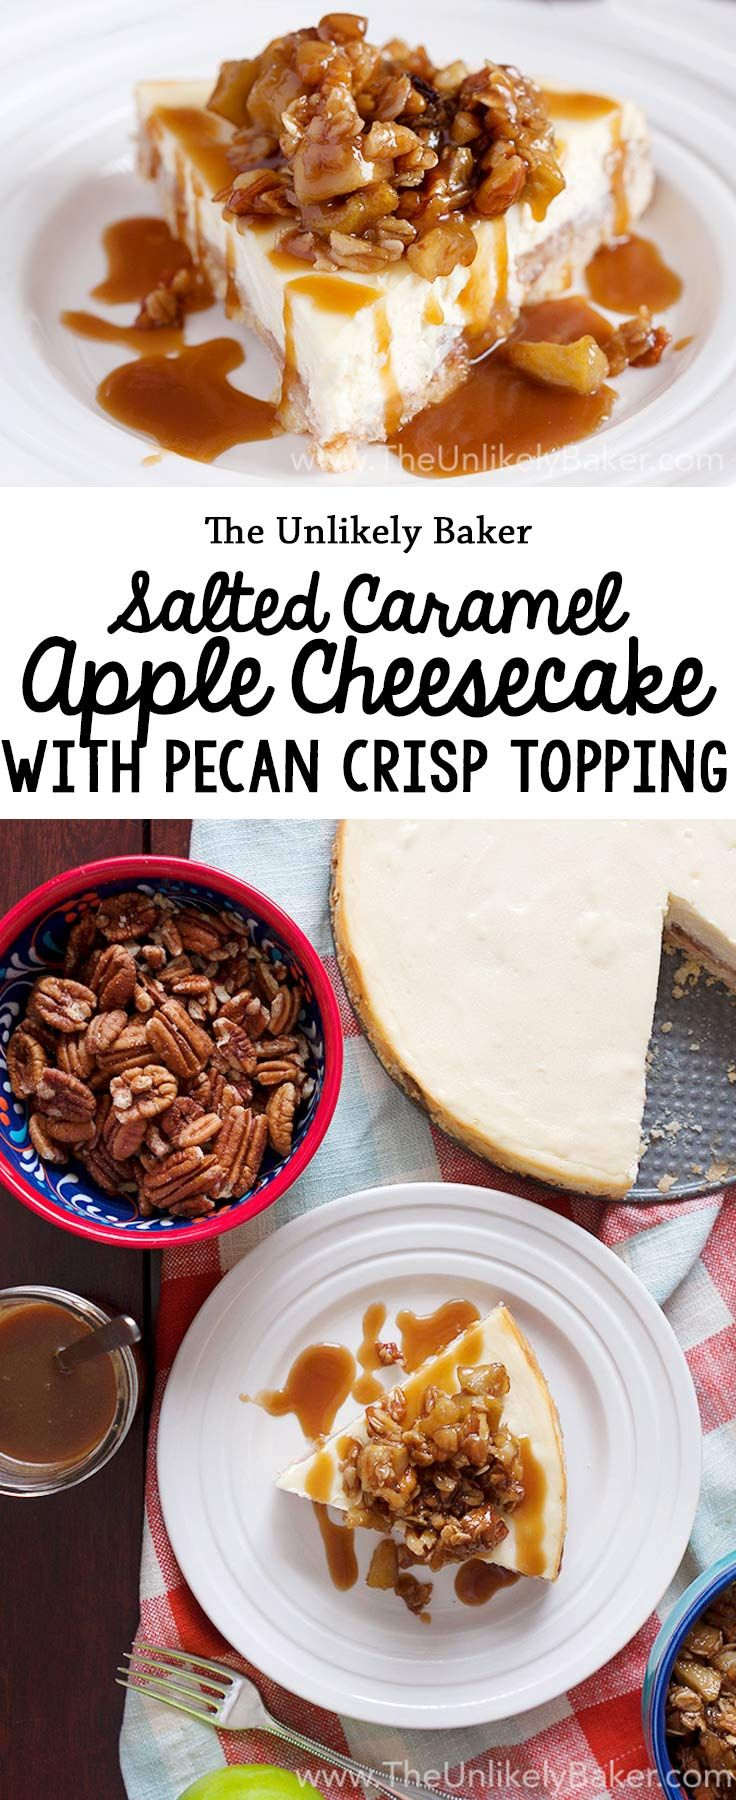 Celebrate fall with this salted caramel apple cheesecake! Butter crust, cinnamon apples, creamy cheesecake, pecan oat crisp, salted caramel sauce. You're welcome. #cheesecake #dessert #baking #fall #apples #recipe